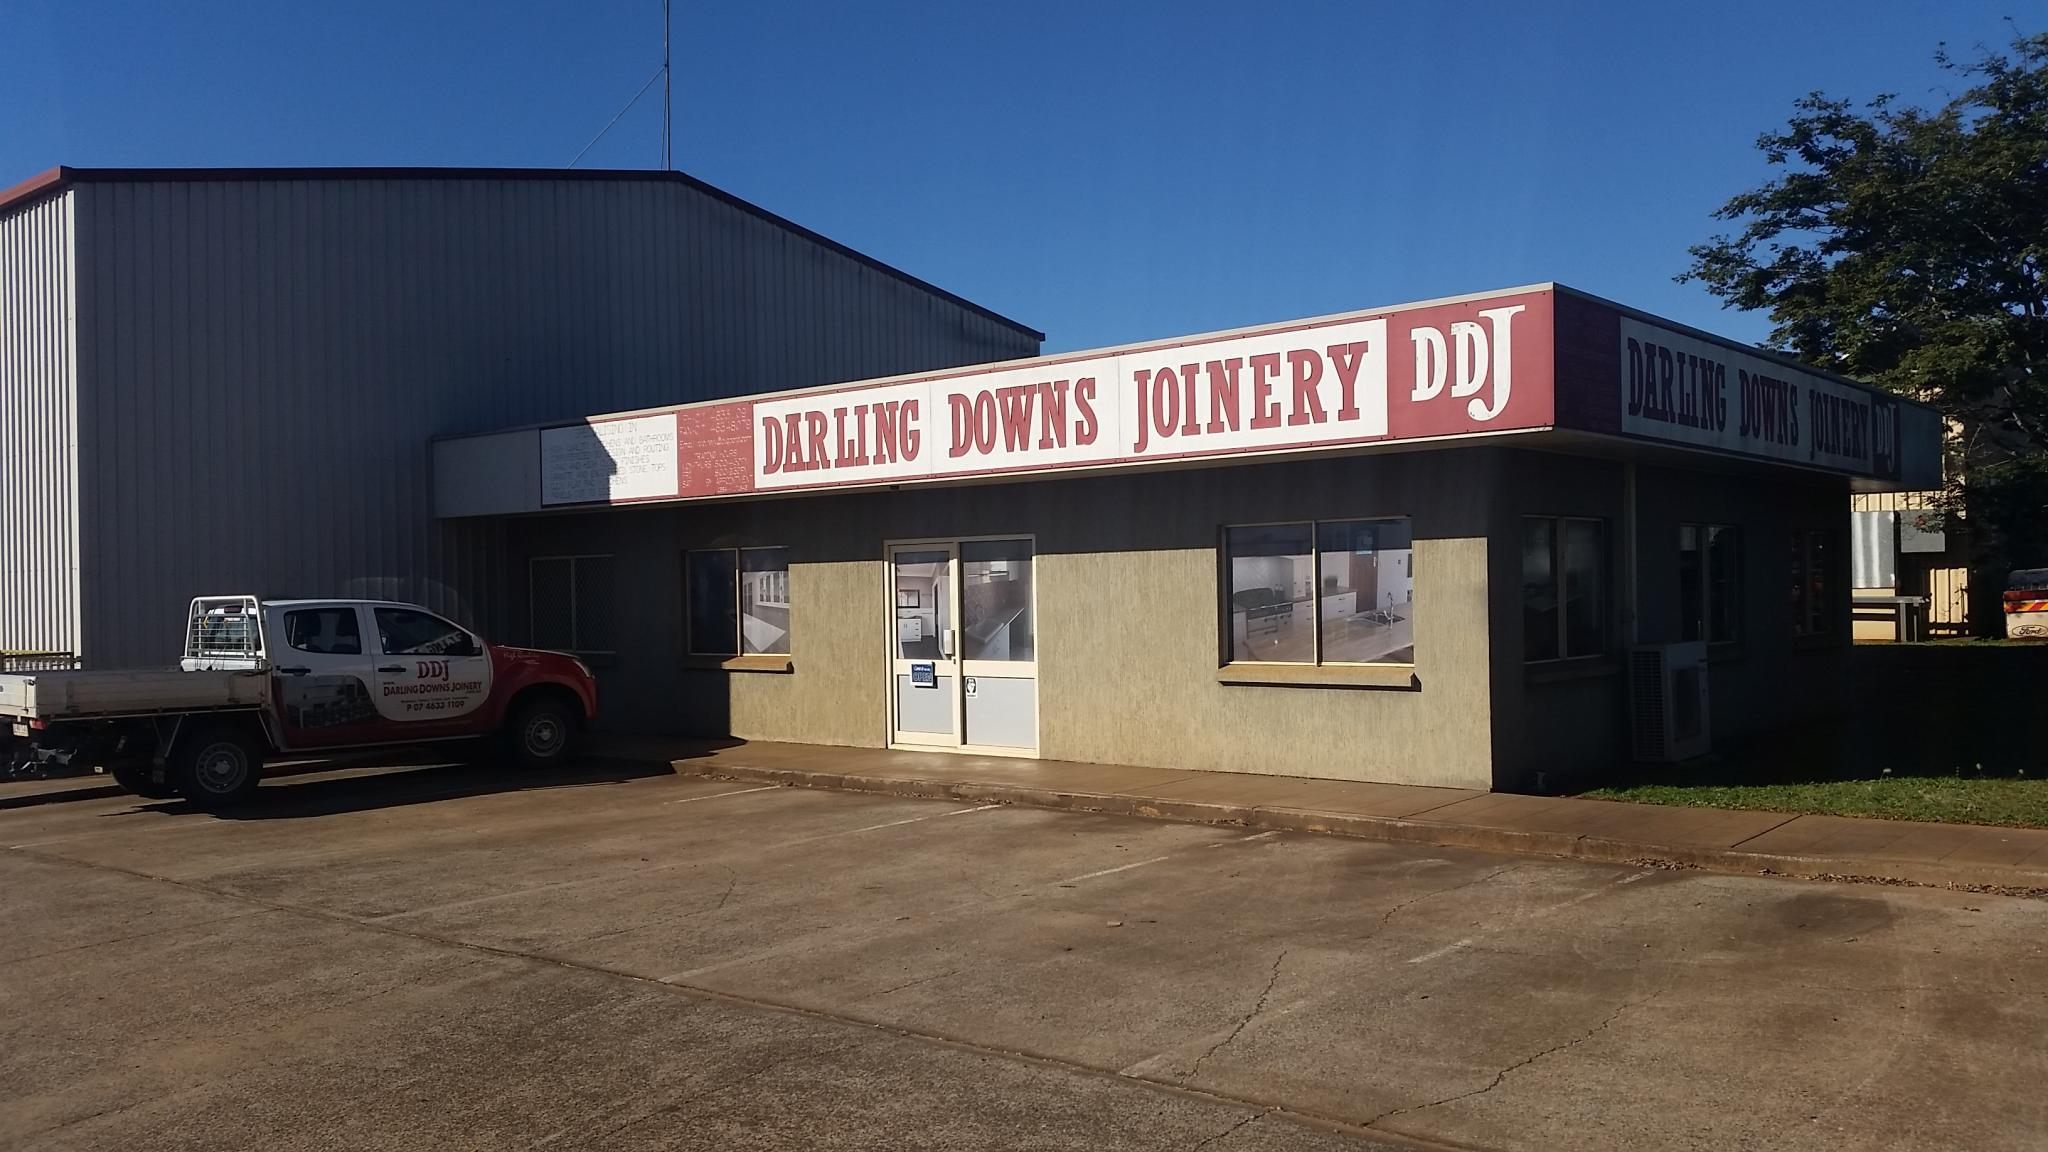 About Darling Downs Joinery - Kitchens Toowoomba